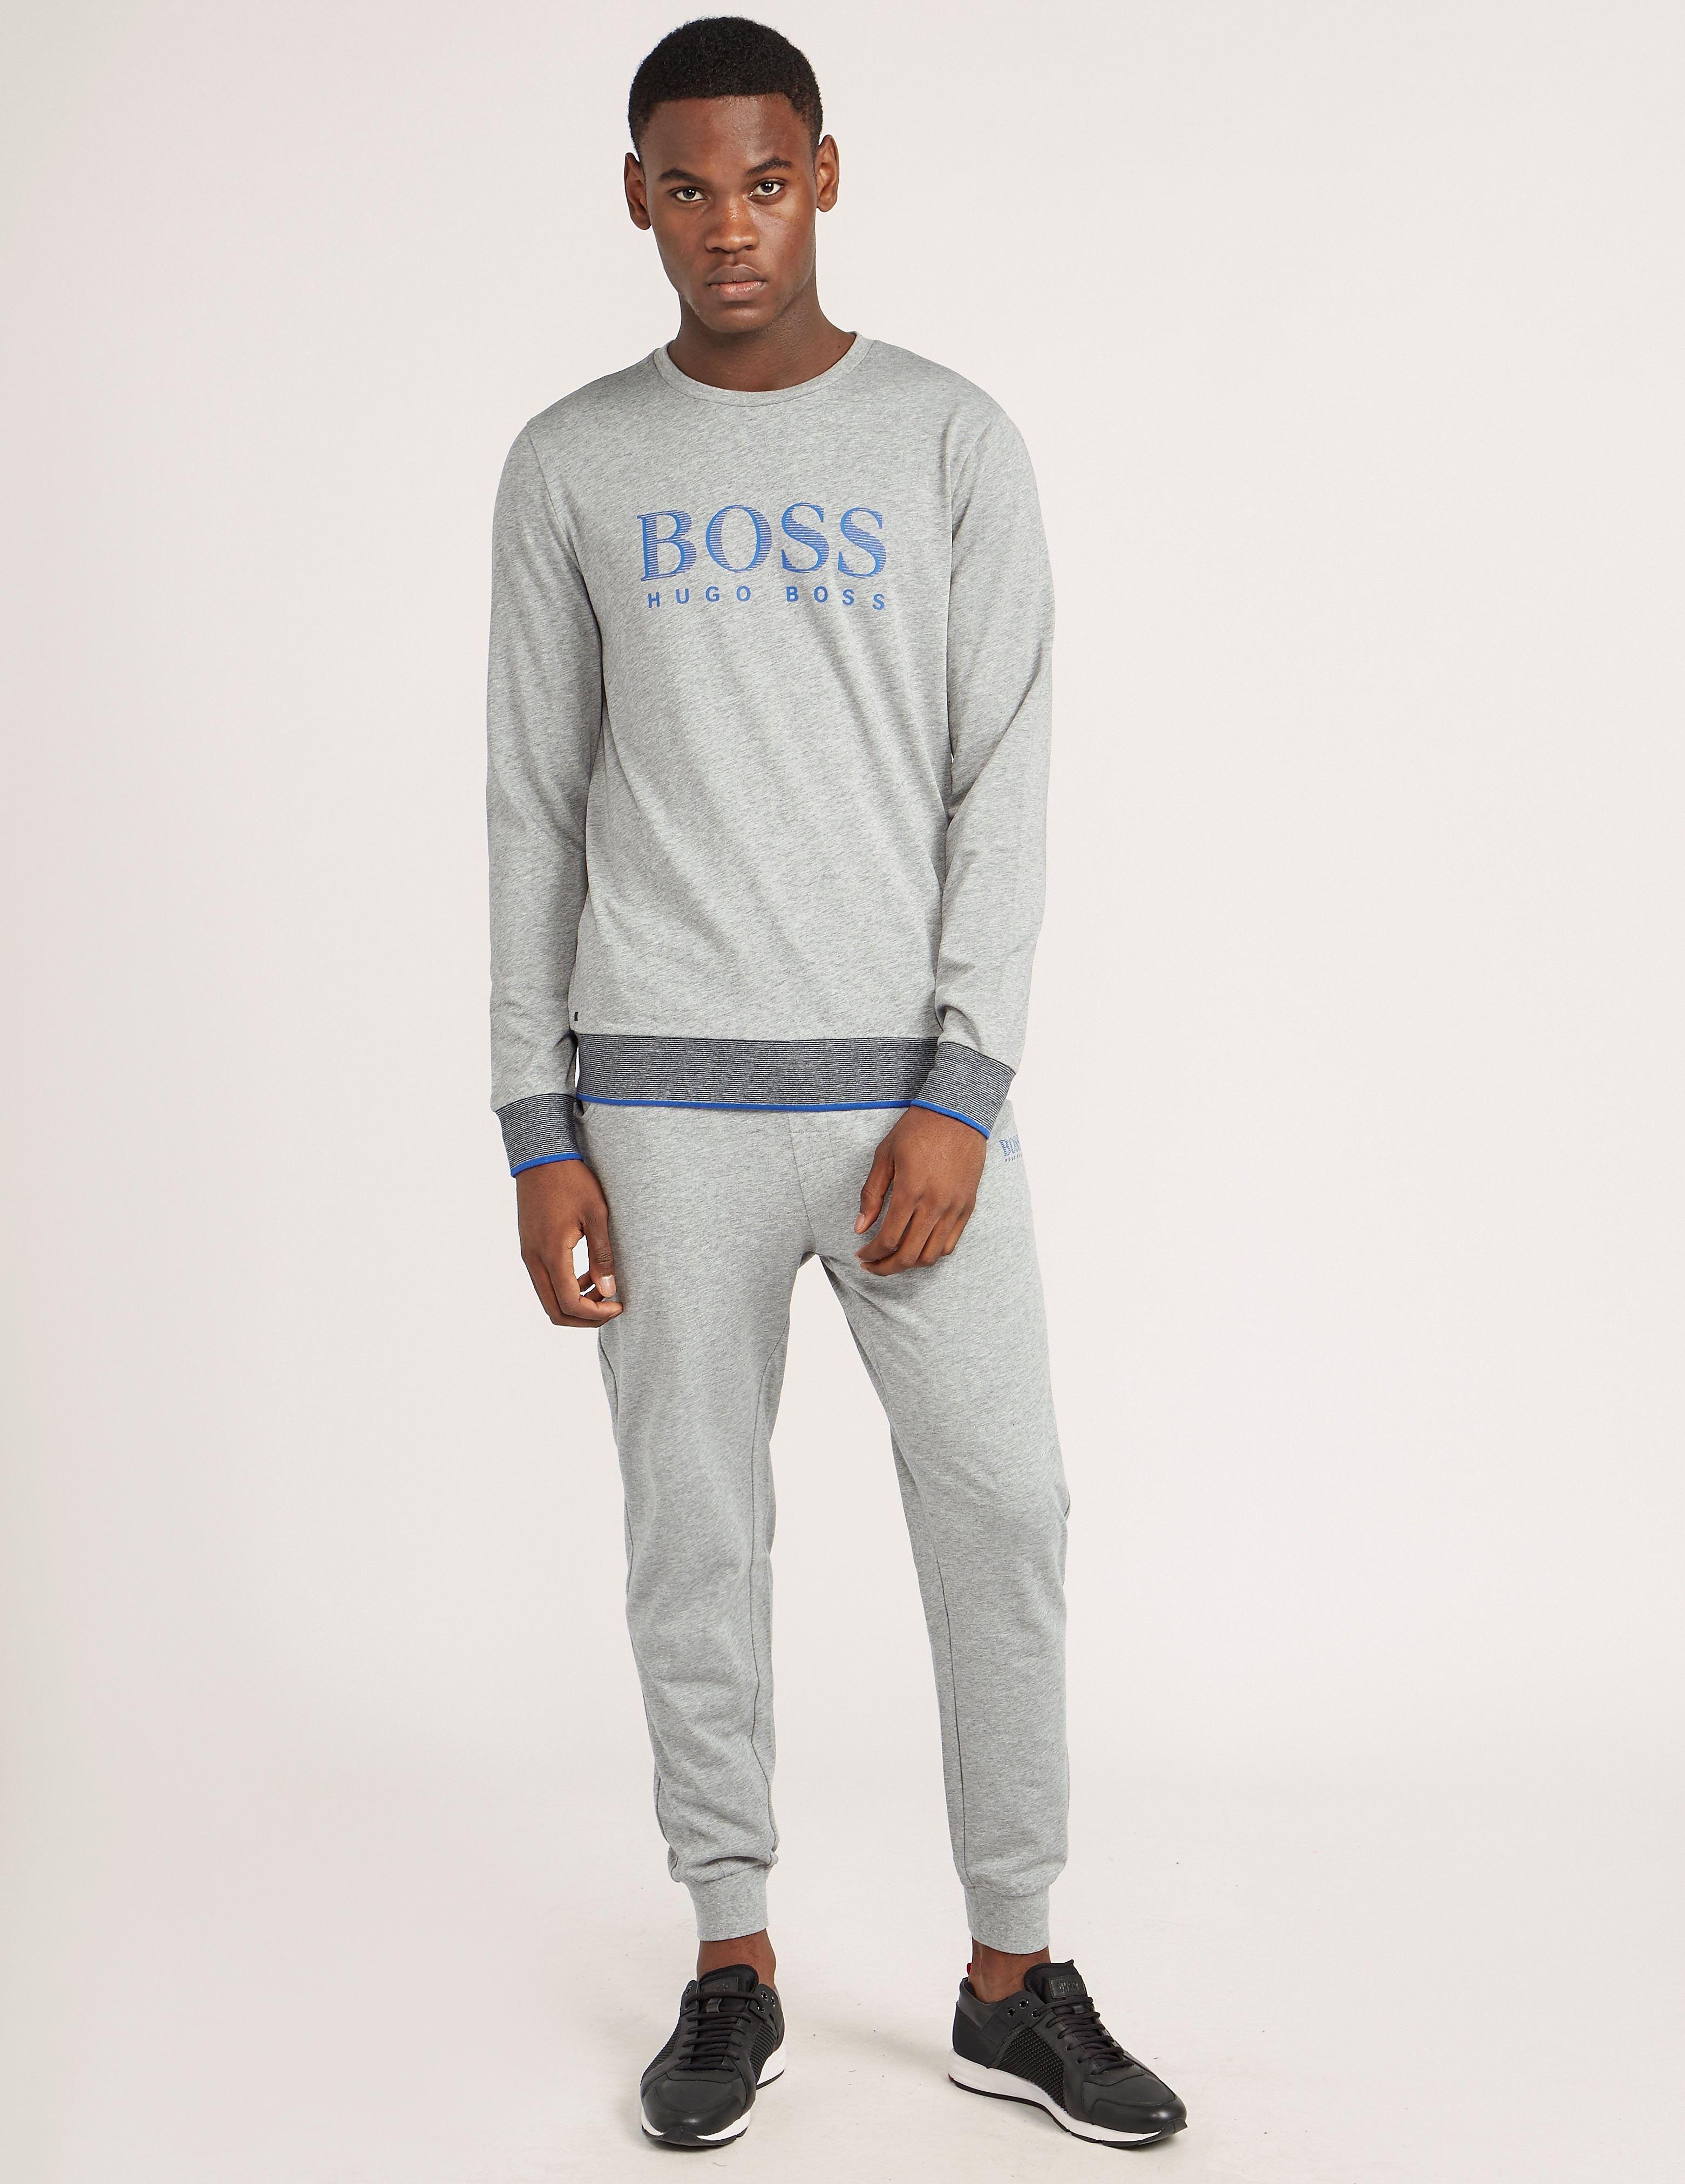 BOSS Authentic Crew Neck Sweatshirt